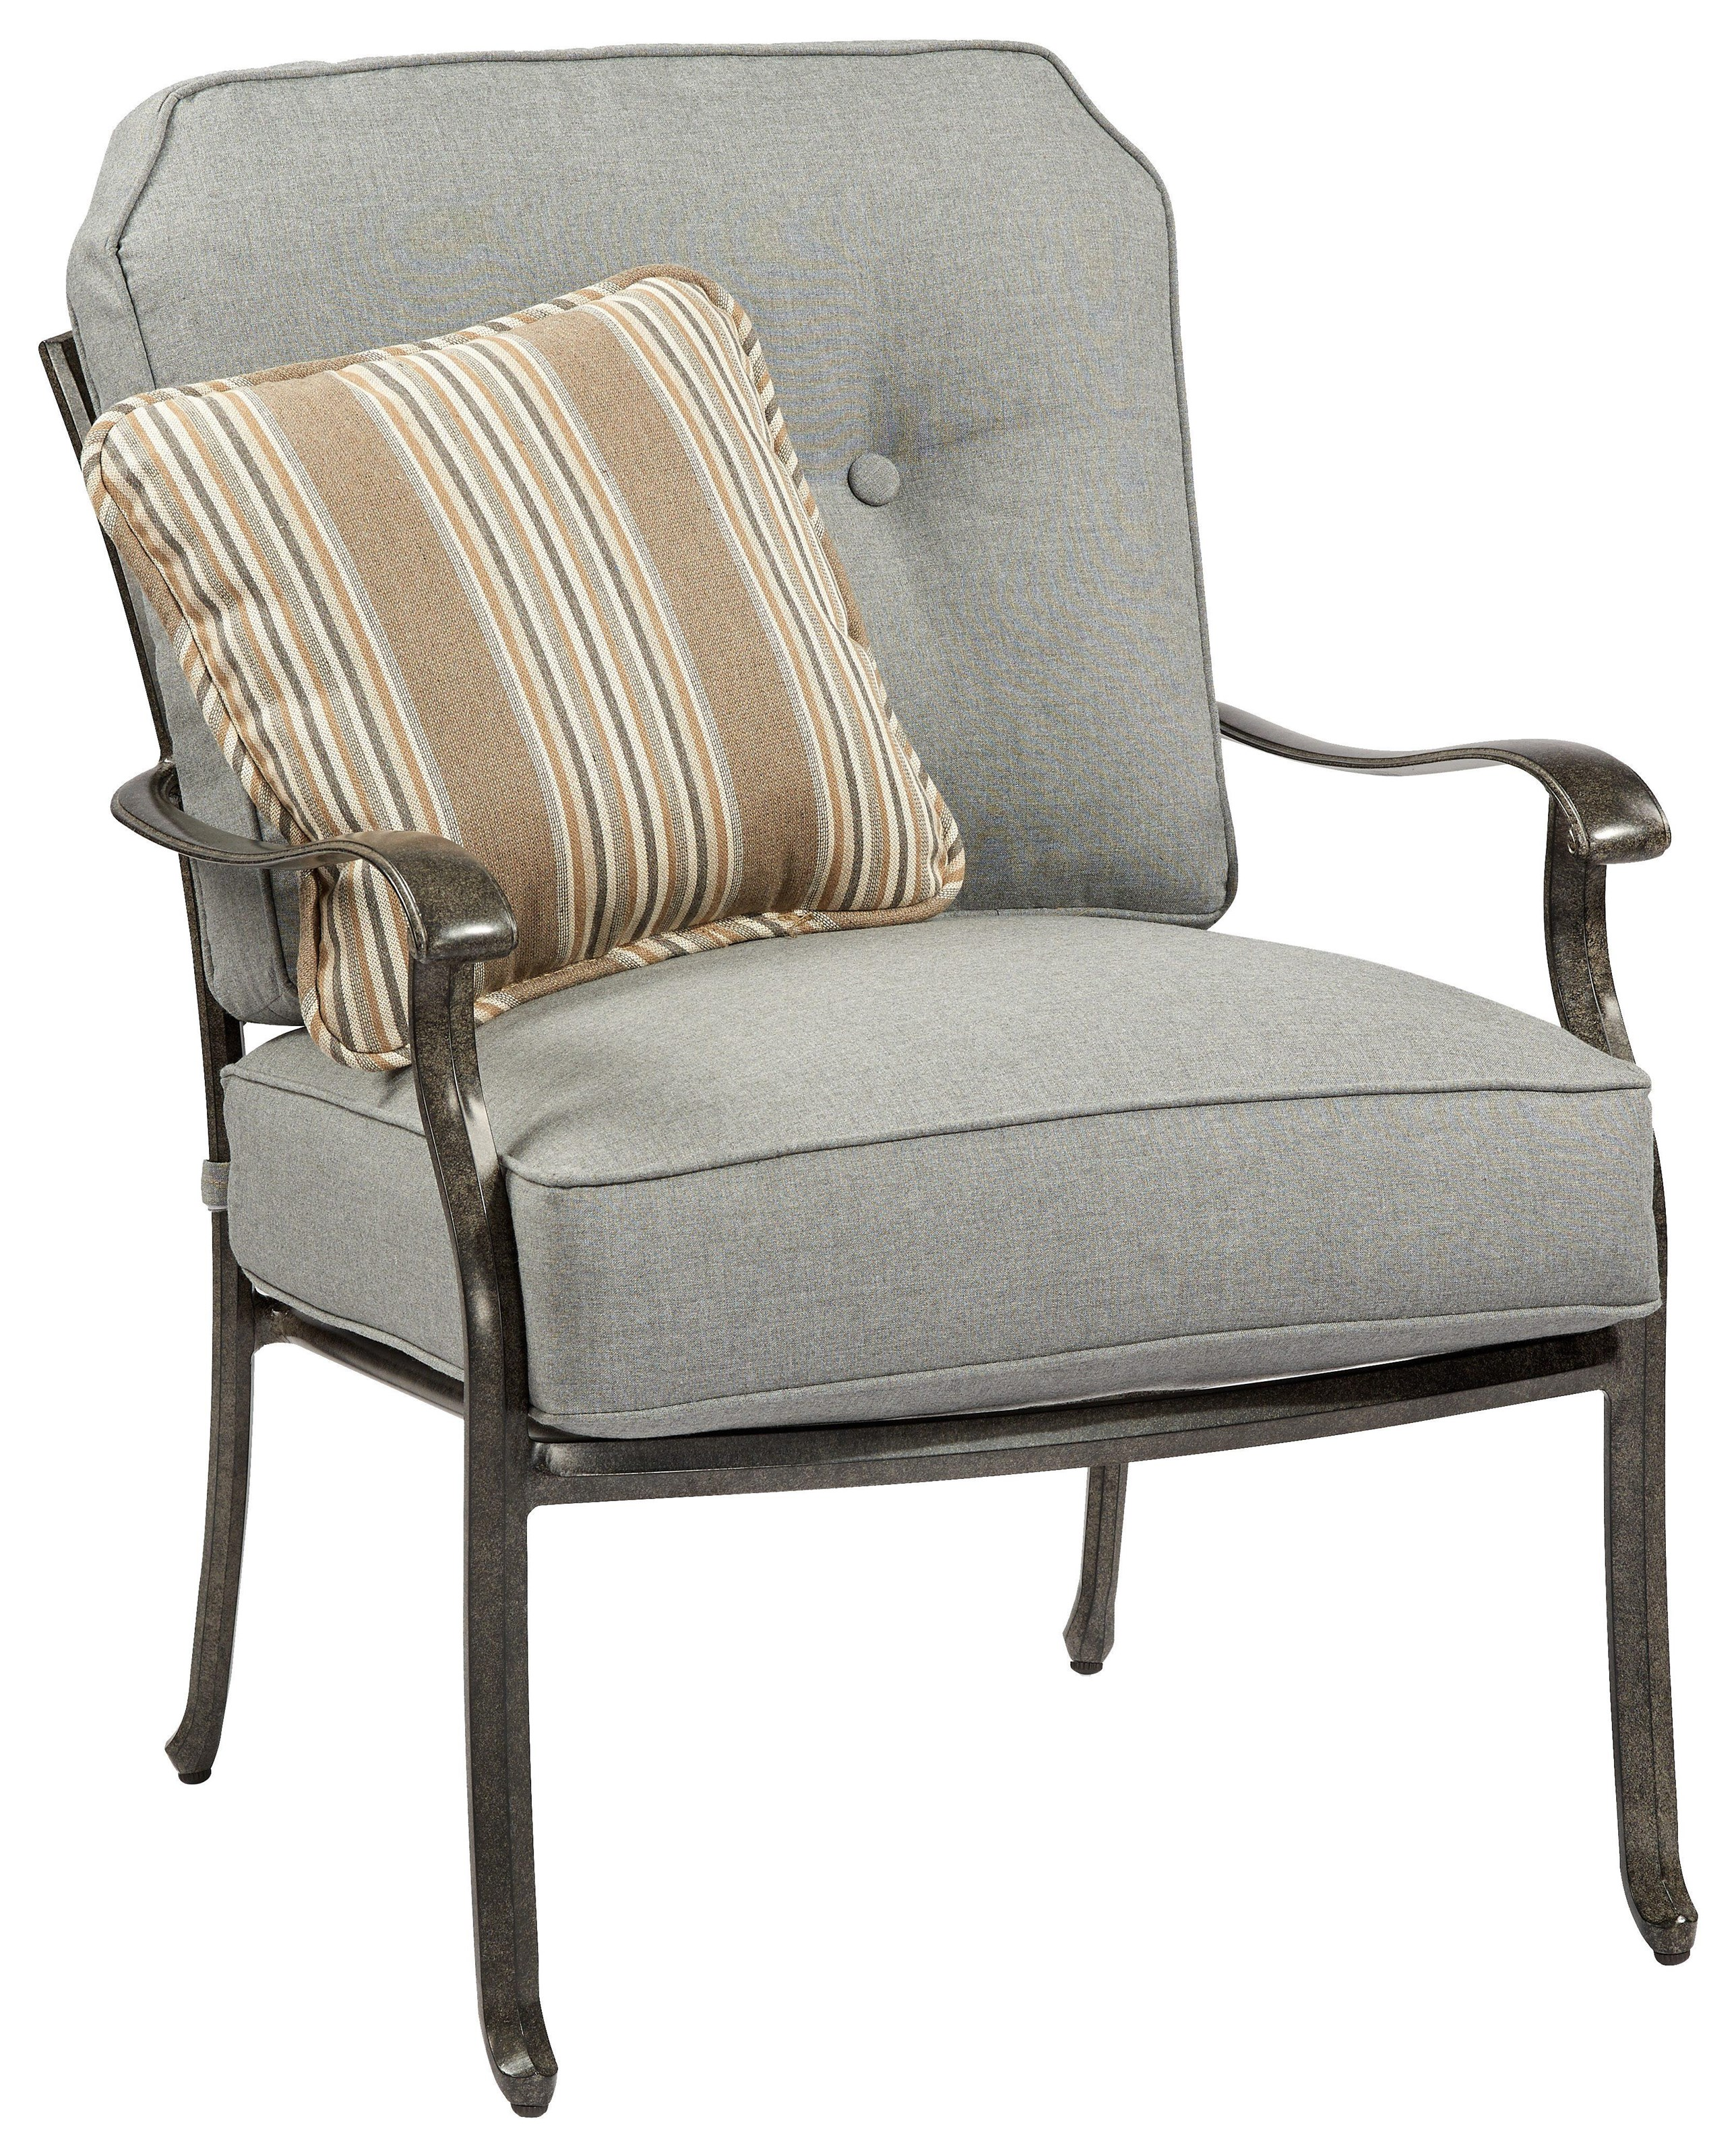 Madison Lounge Chair by Apricity Outdoor at Johnny Janosik